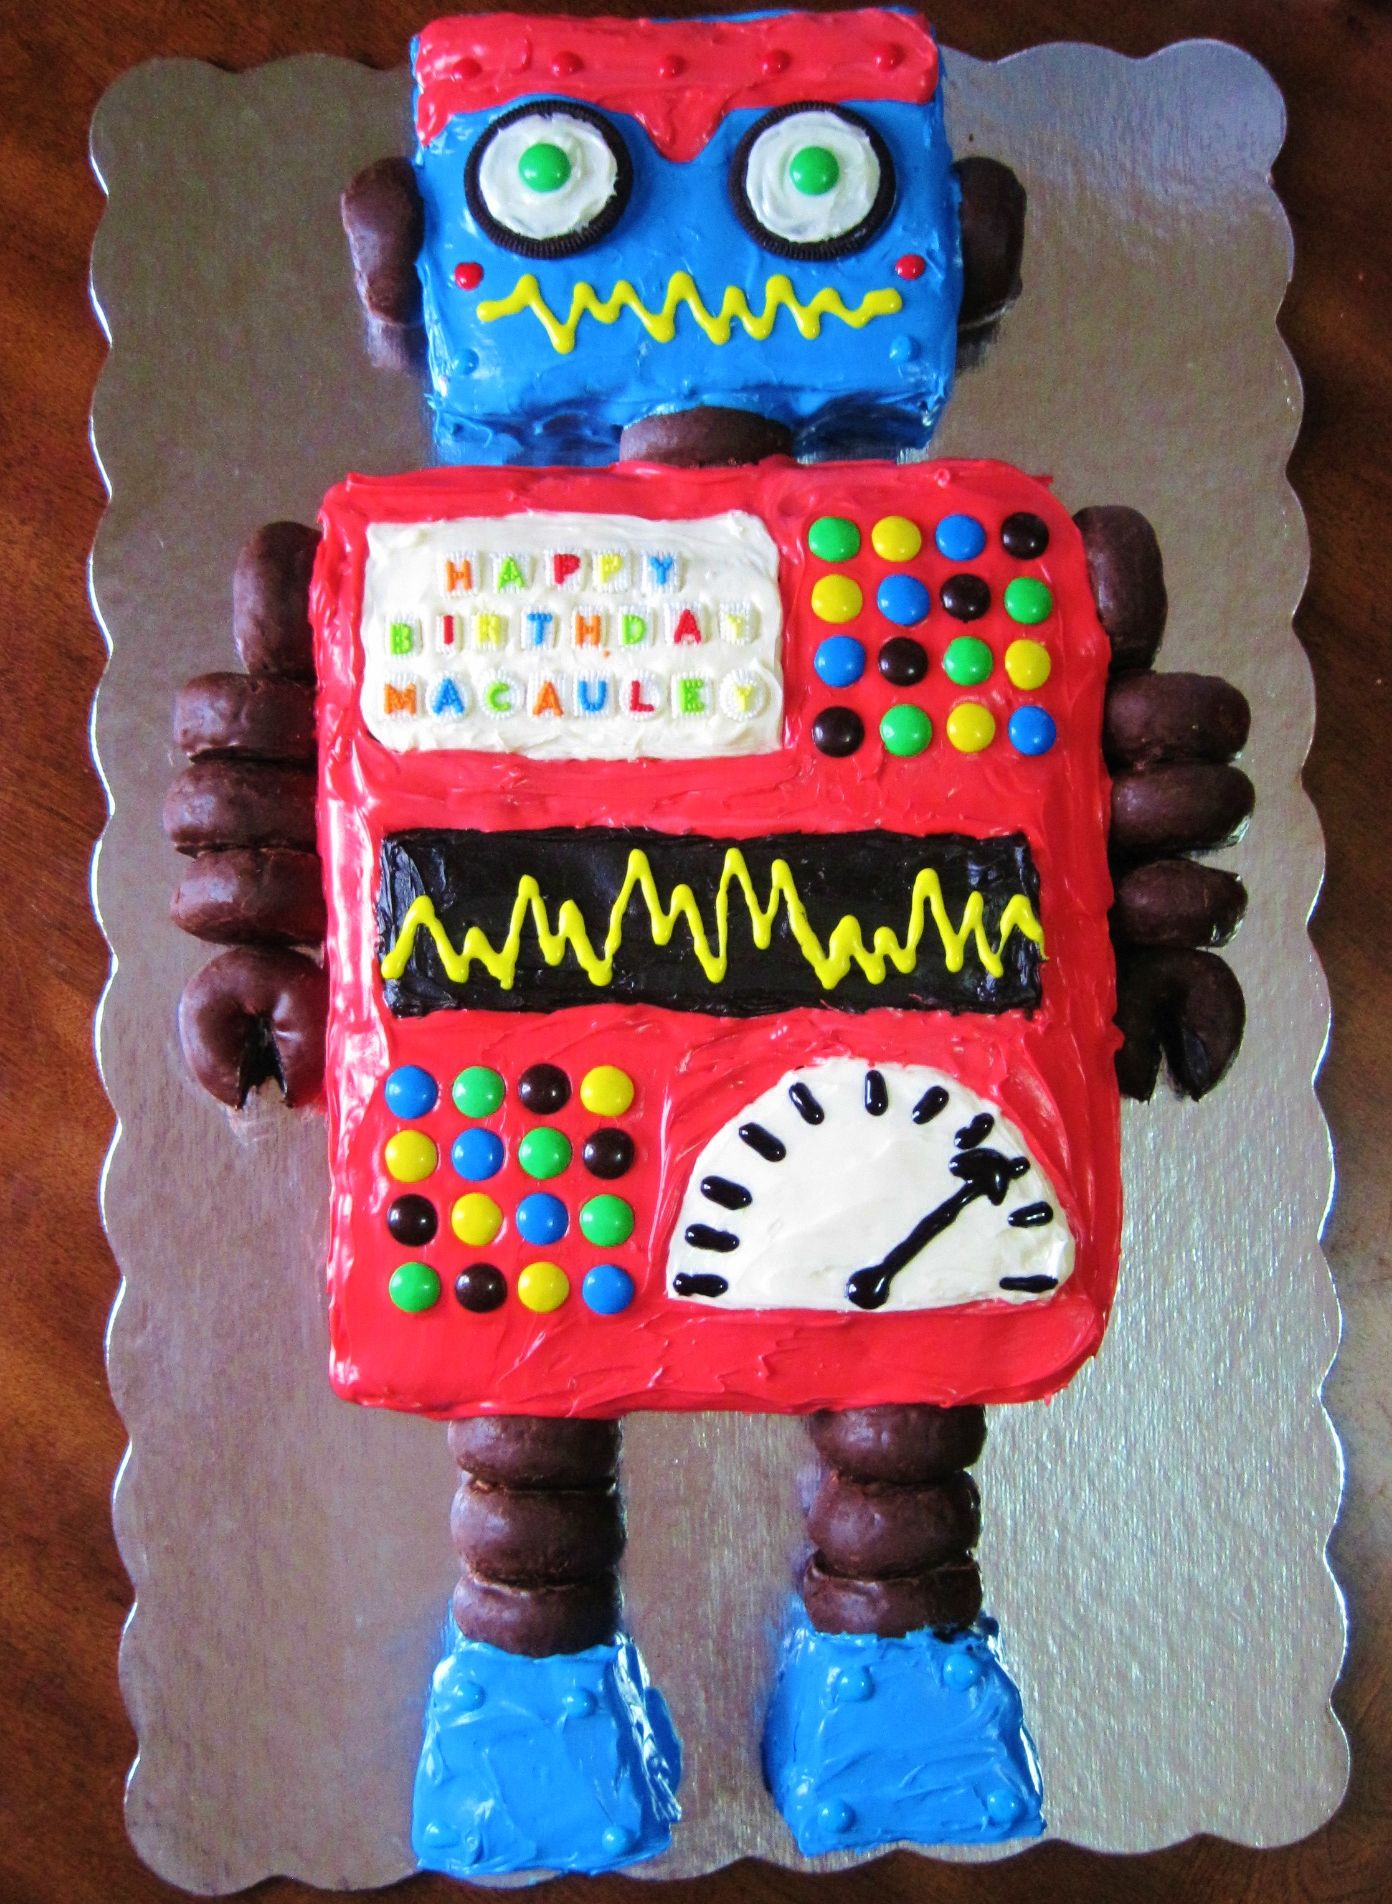 Robot Birthday Cake Kelly Made Pinterest Birthday Cakes Robot